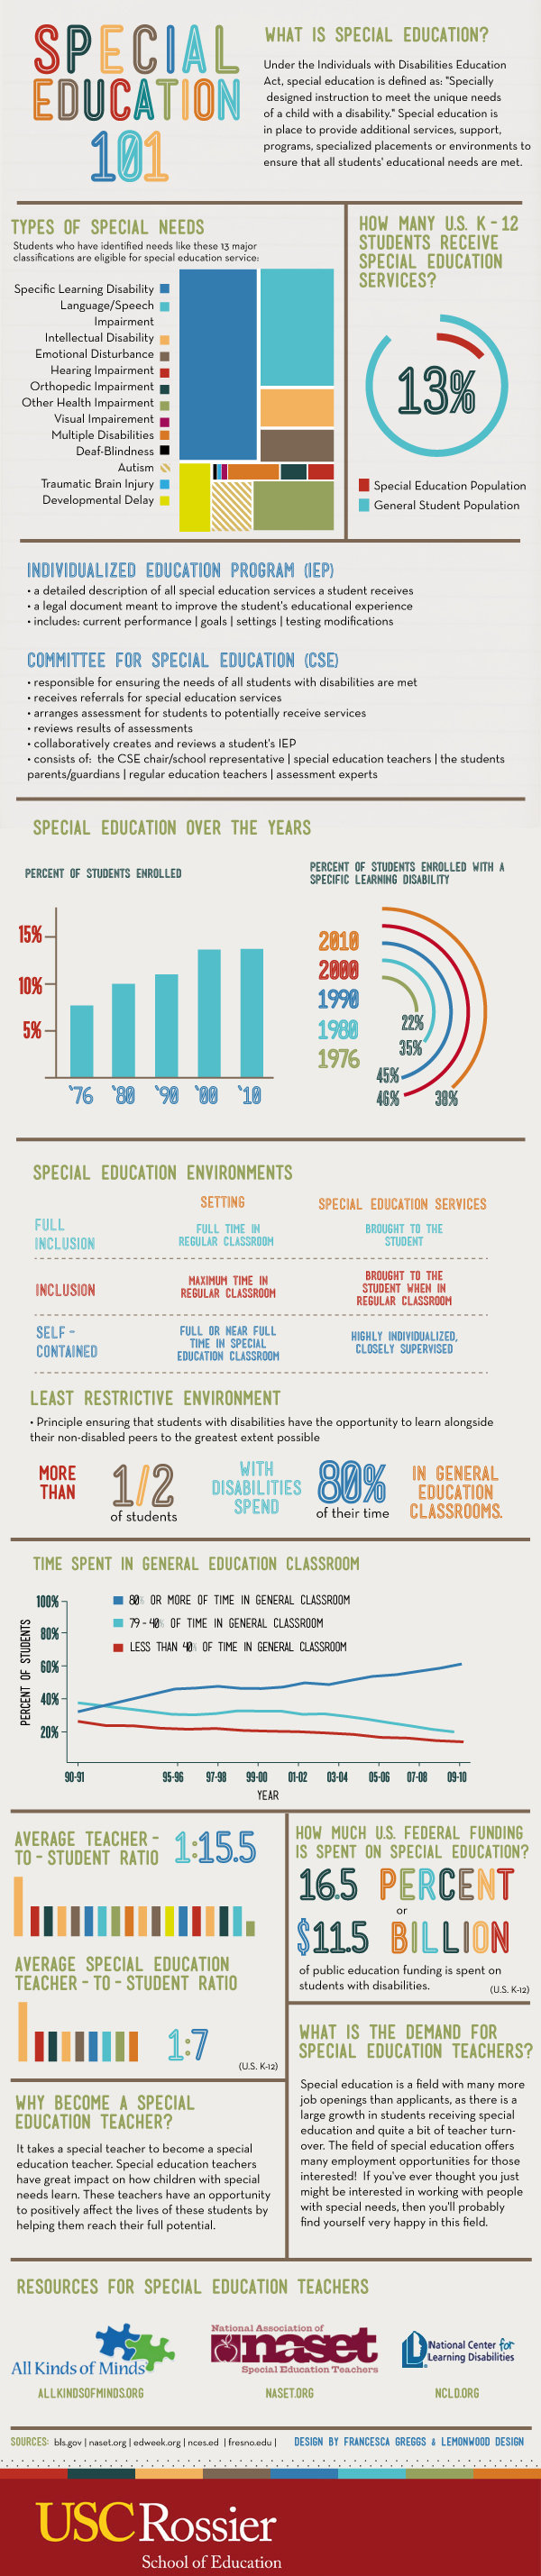 special education #infographic